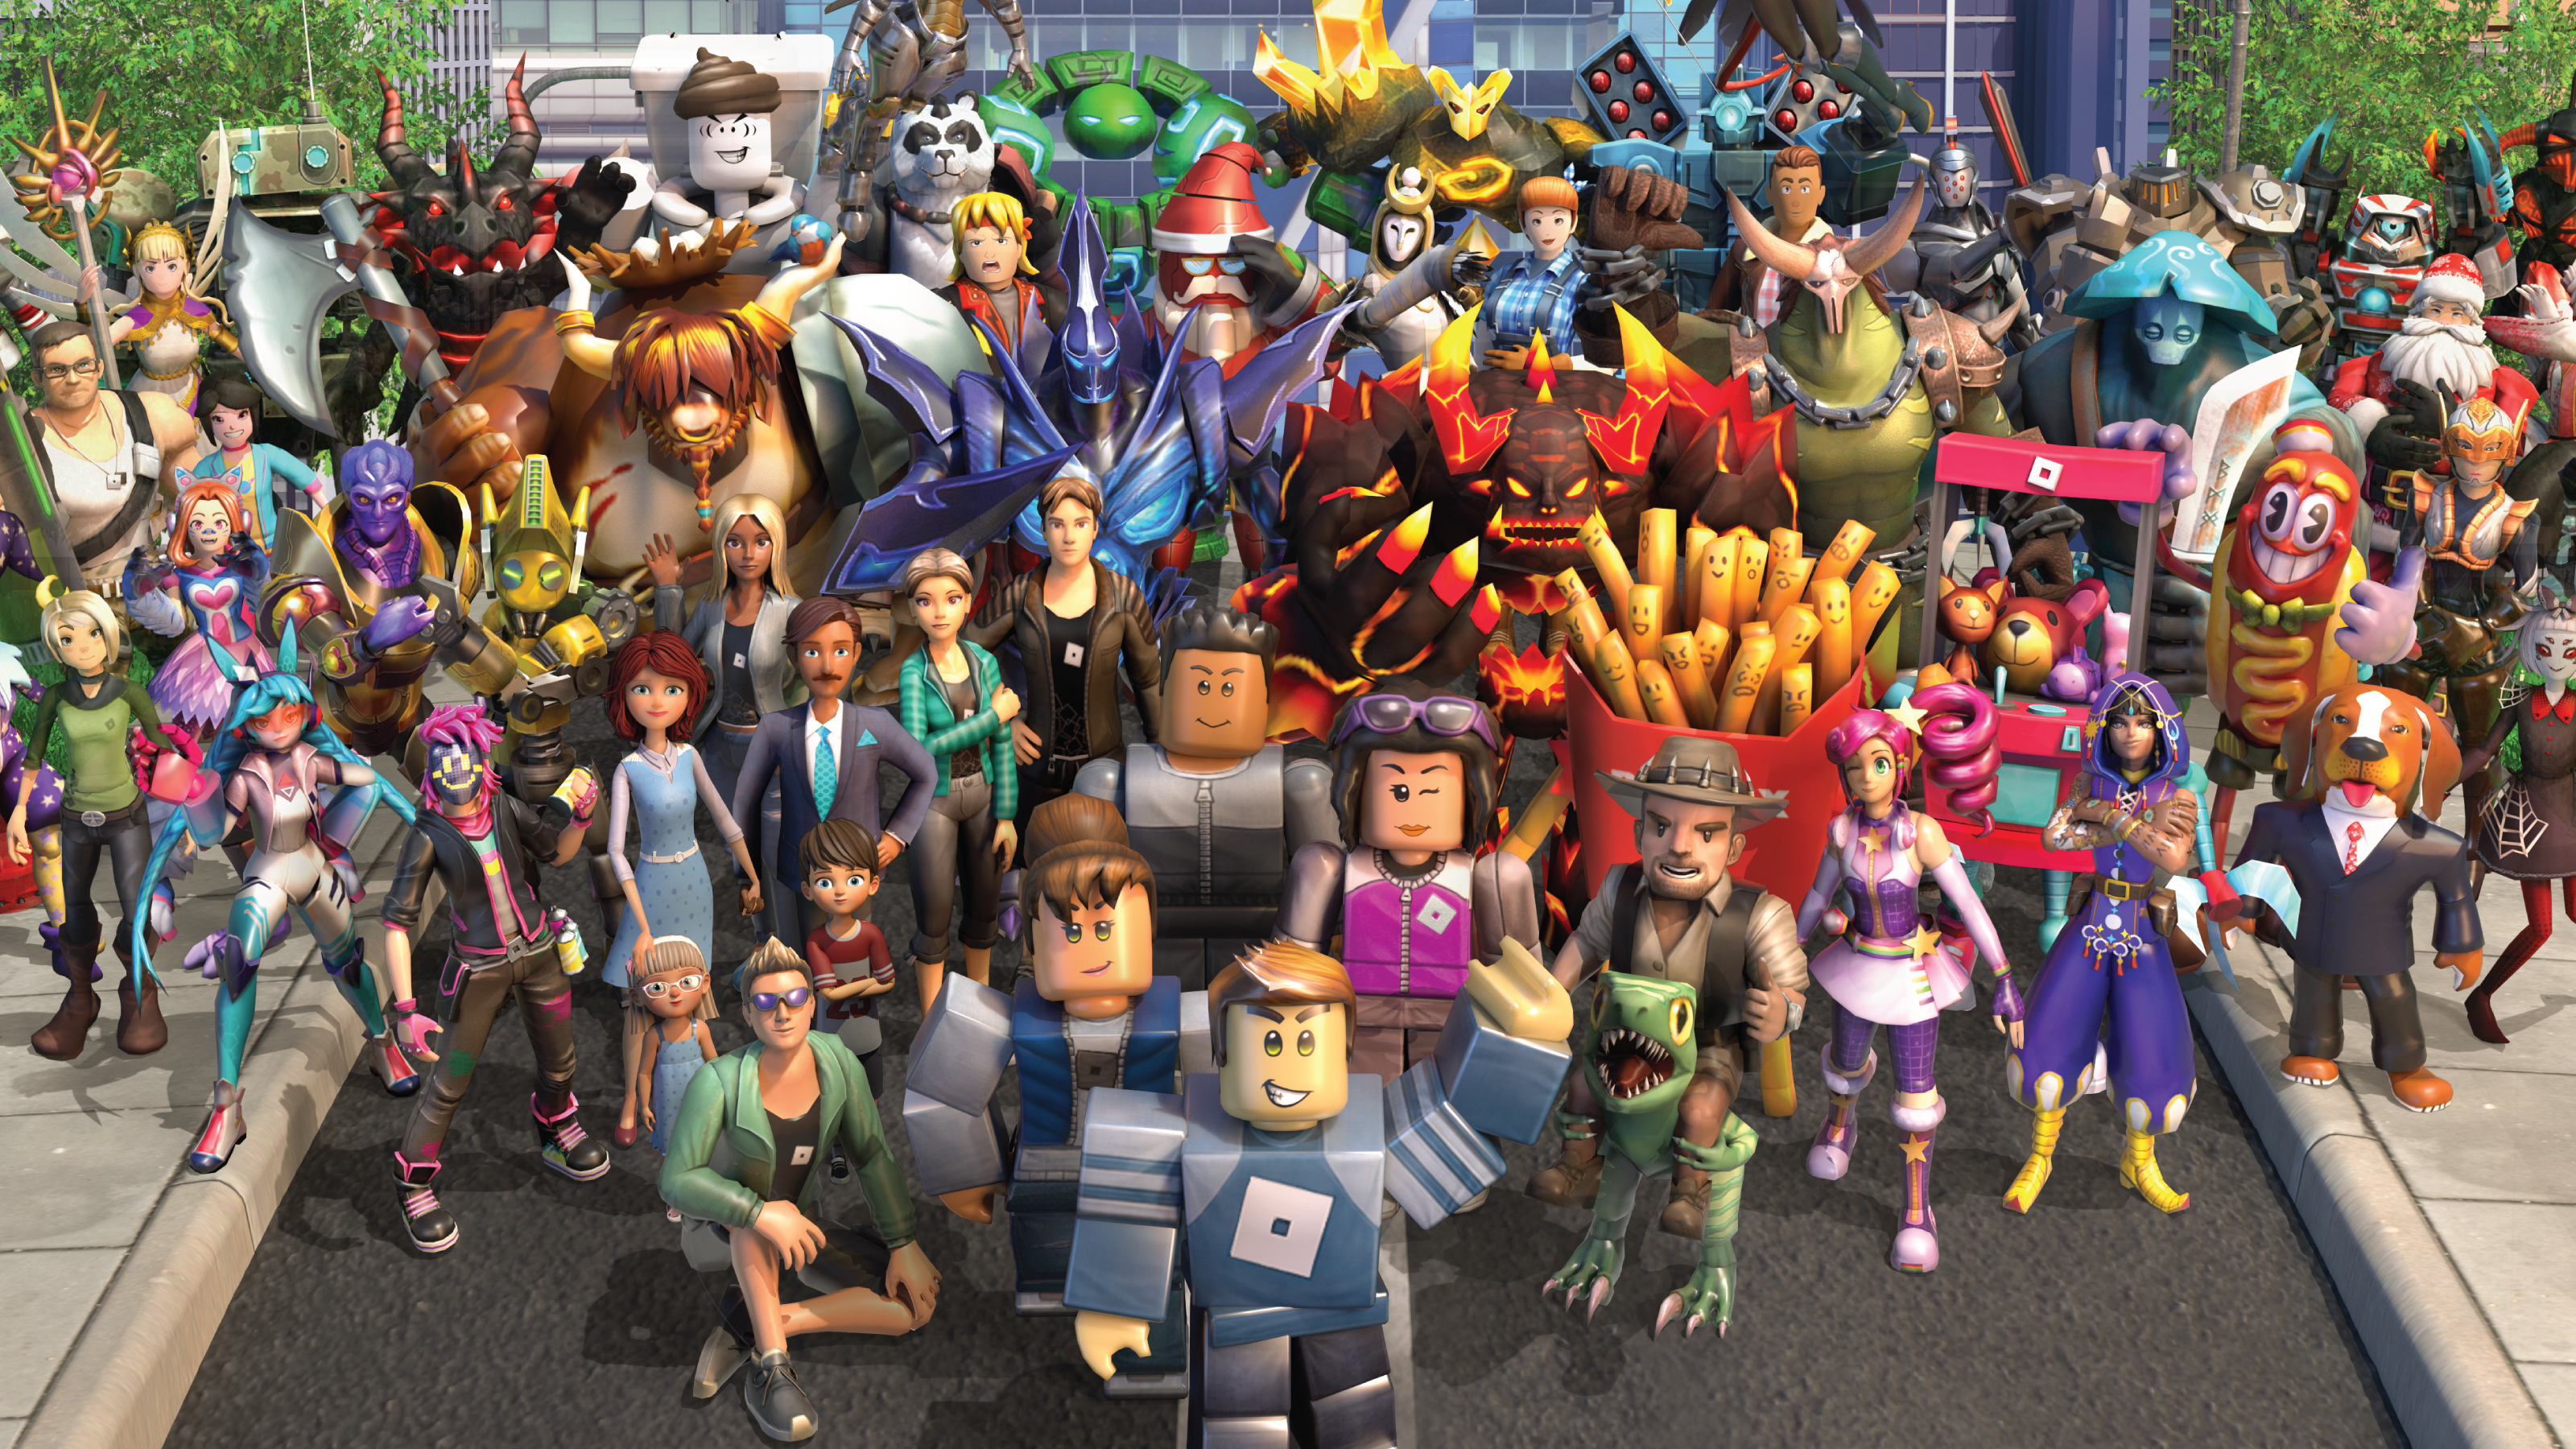 An image of Roblox.